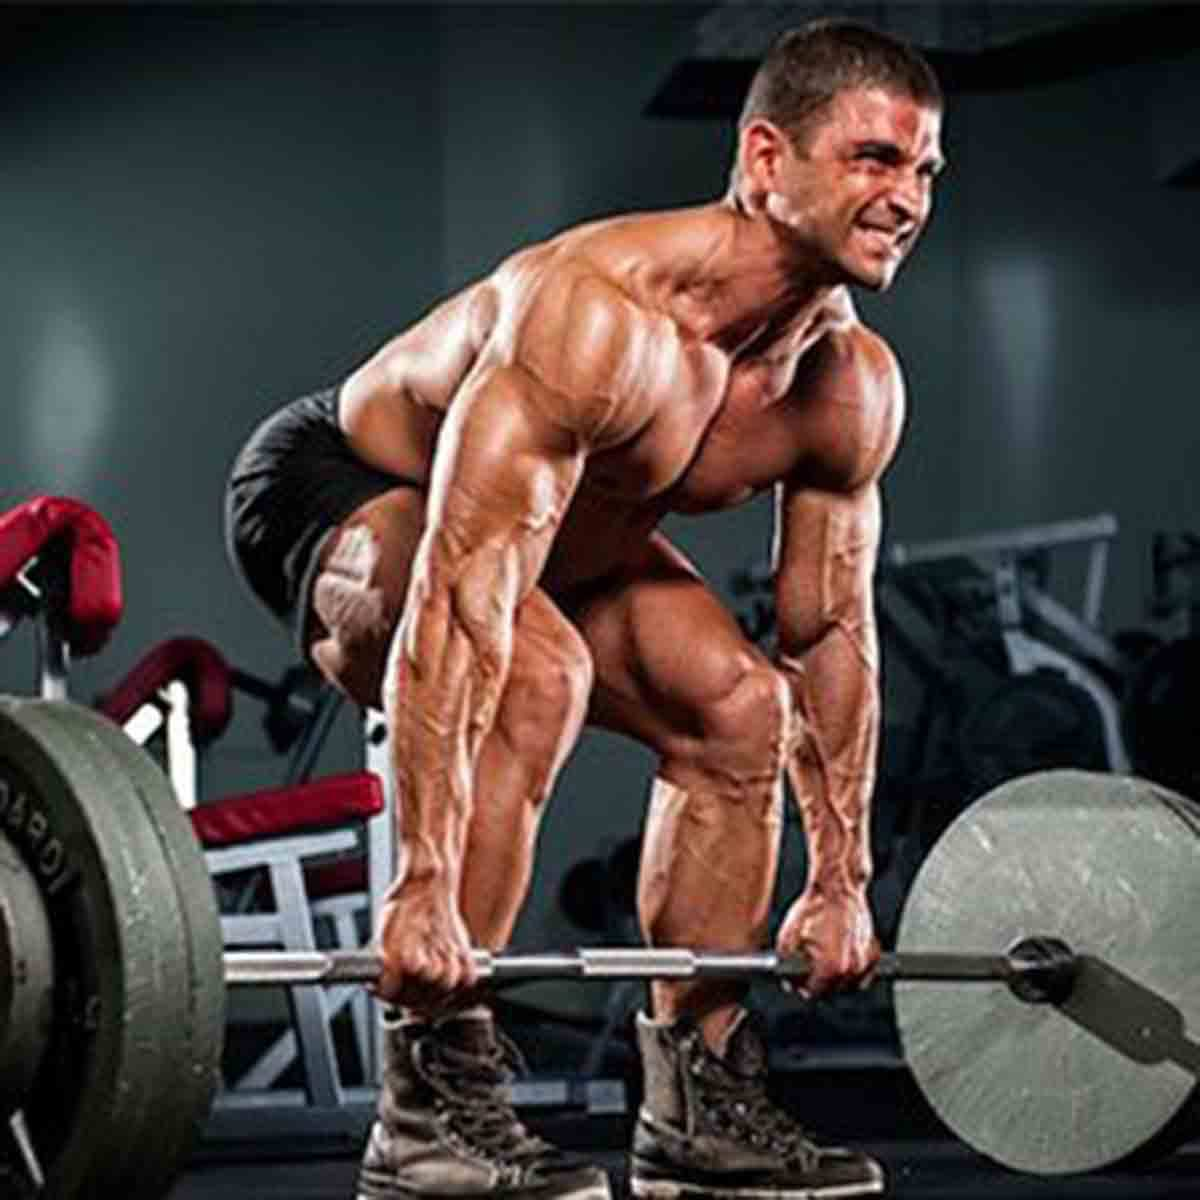 Top 8 Workout Exercises for You to Try, Deadlift